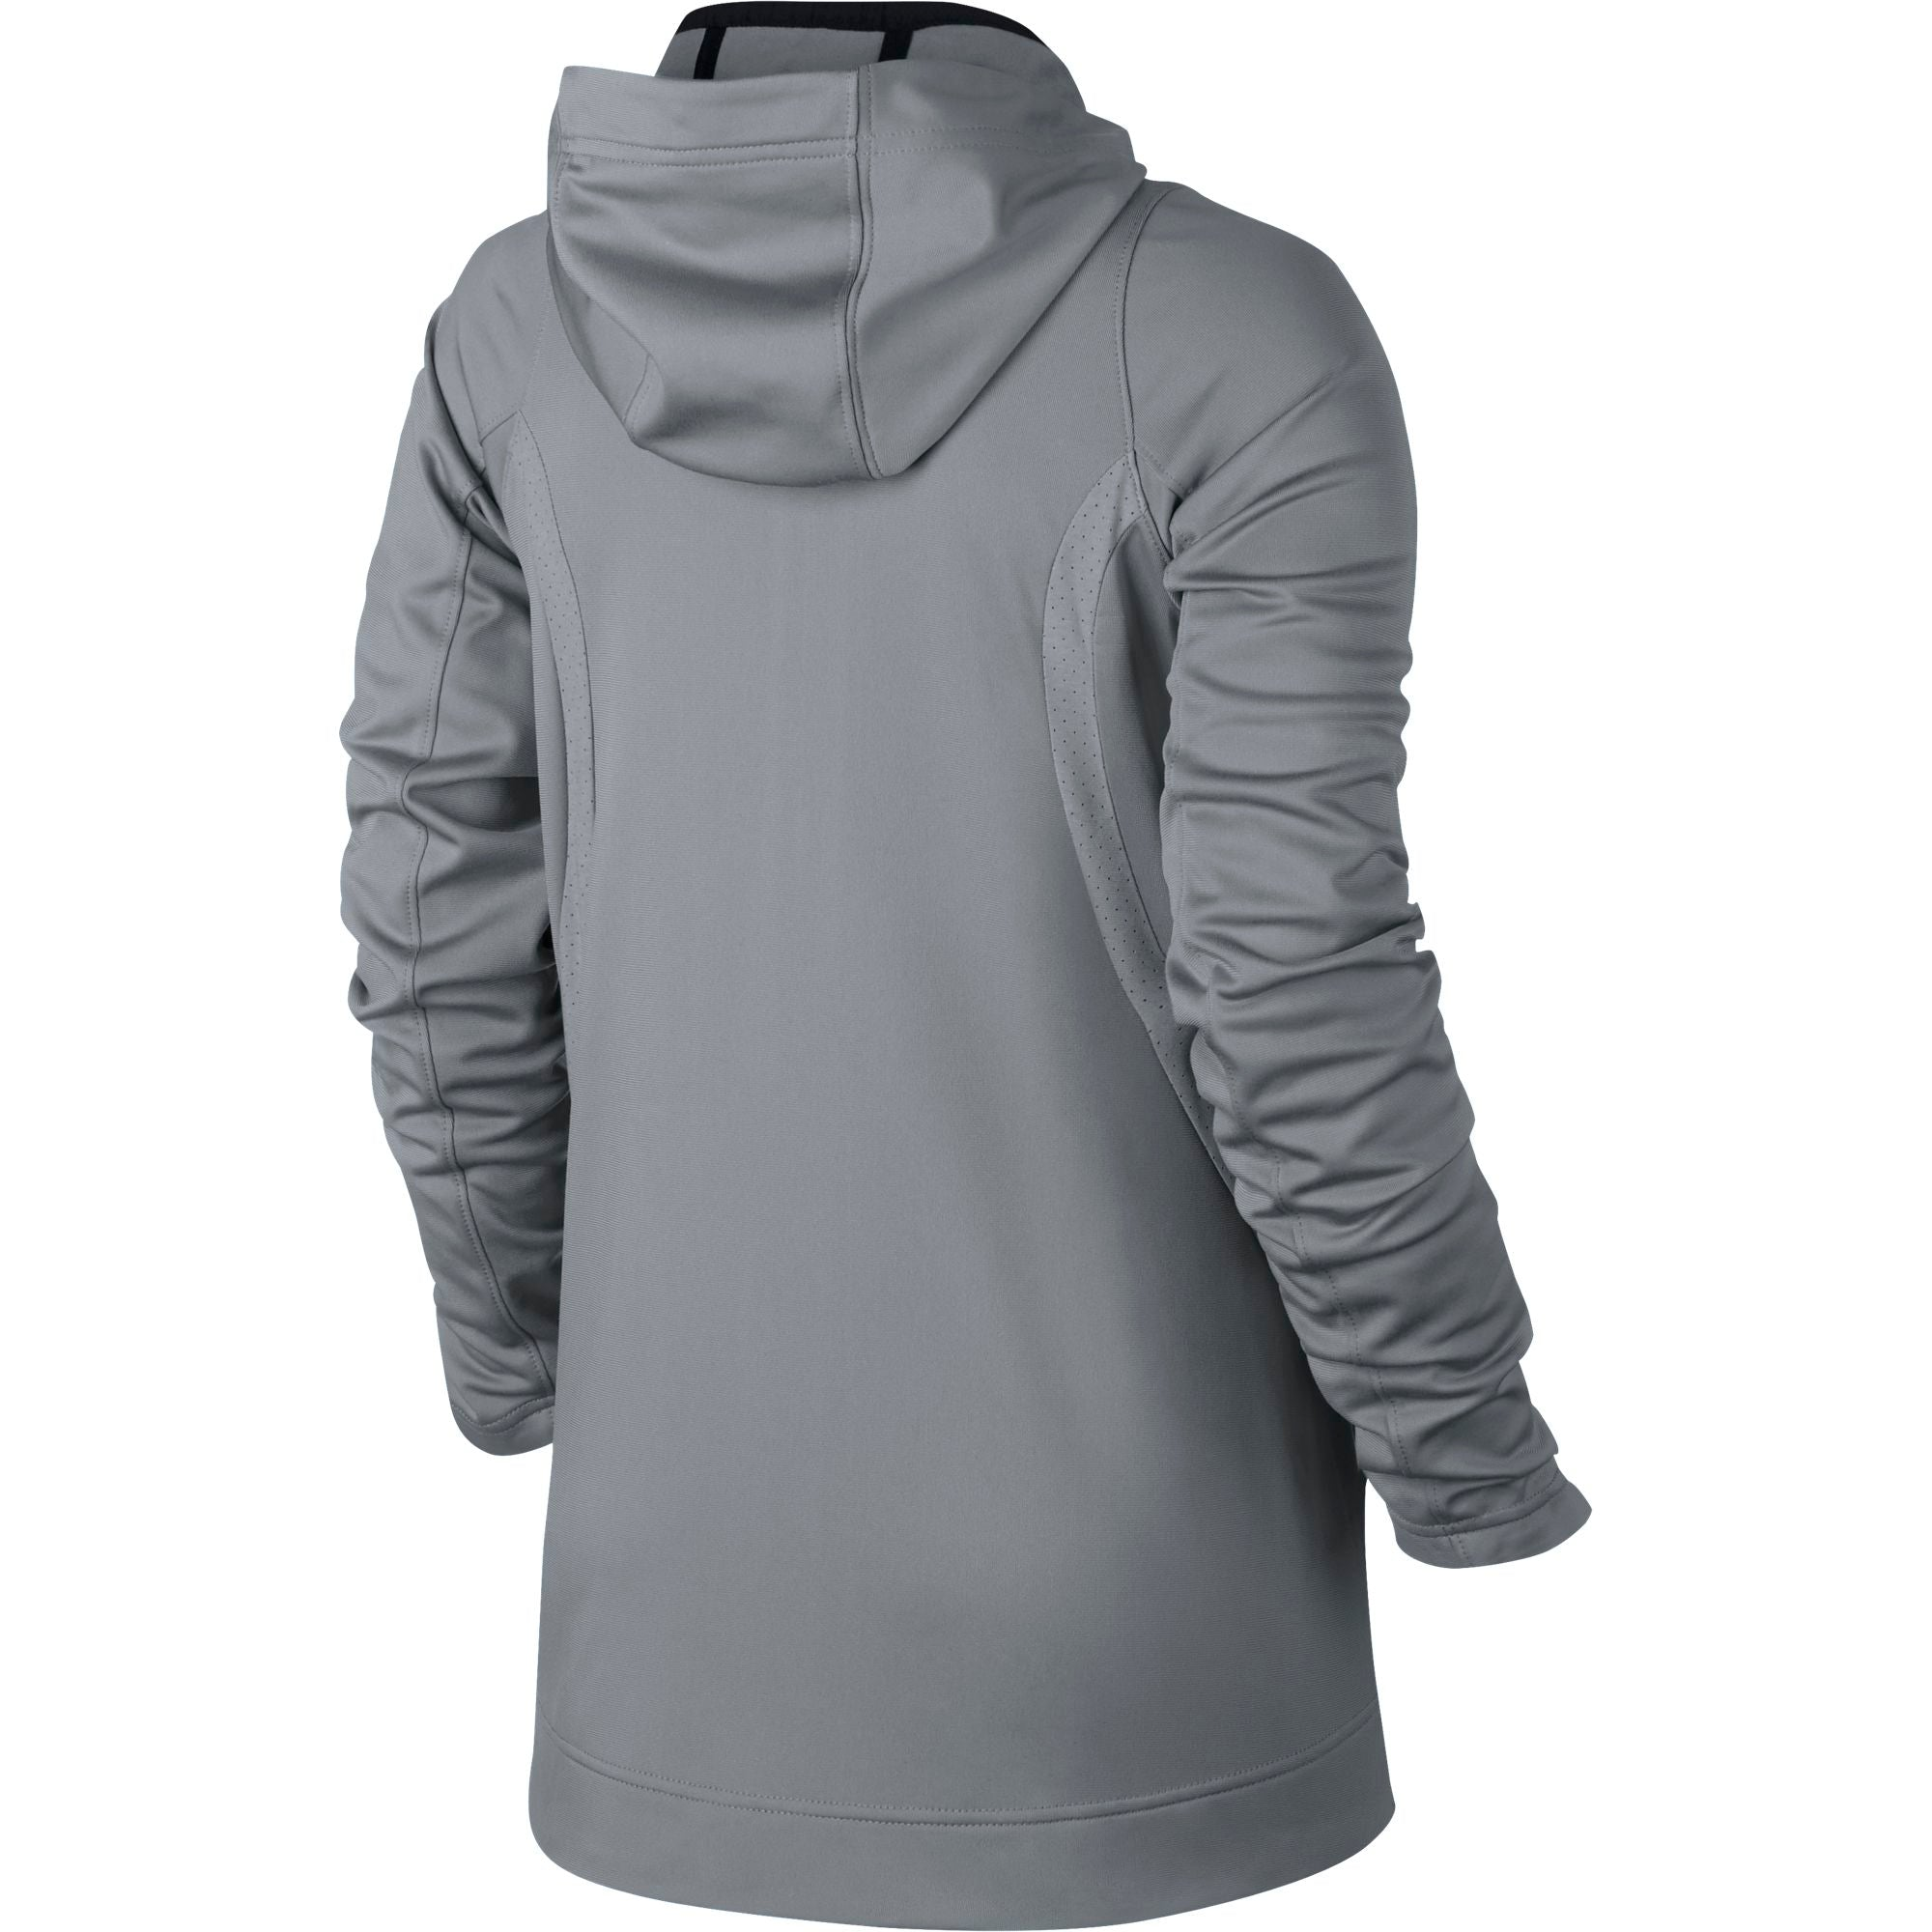 Nike Womens Basketball Hyper Elite Hoodie - Cool Grey/Anthracite/Iridescent